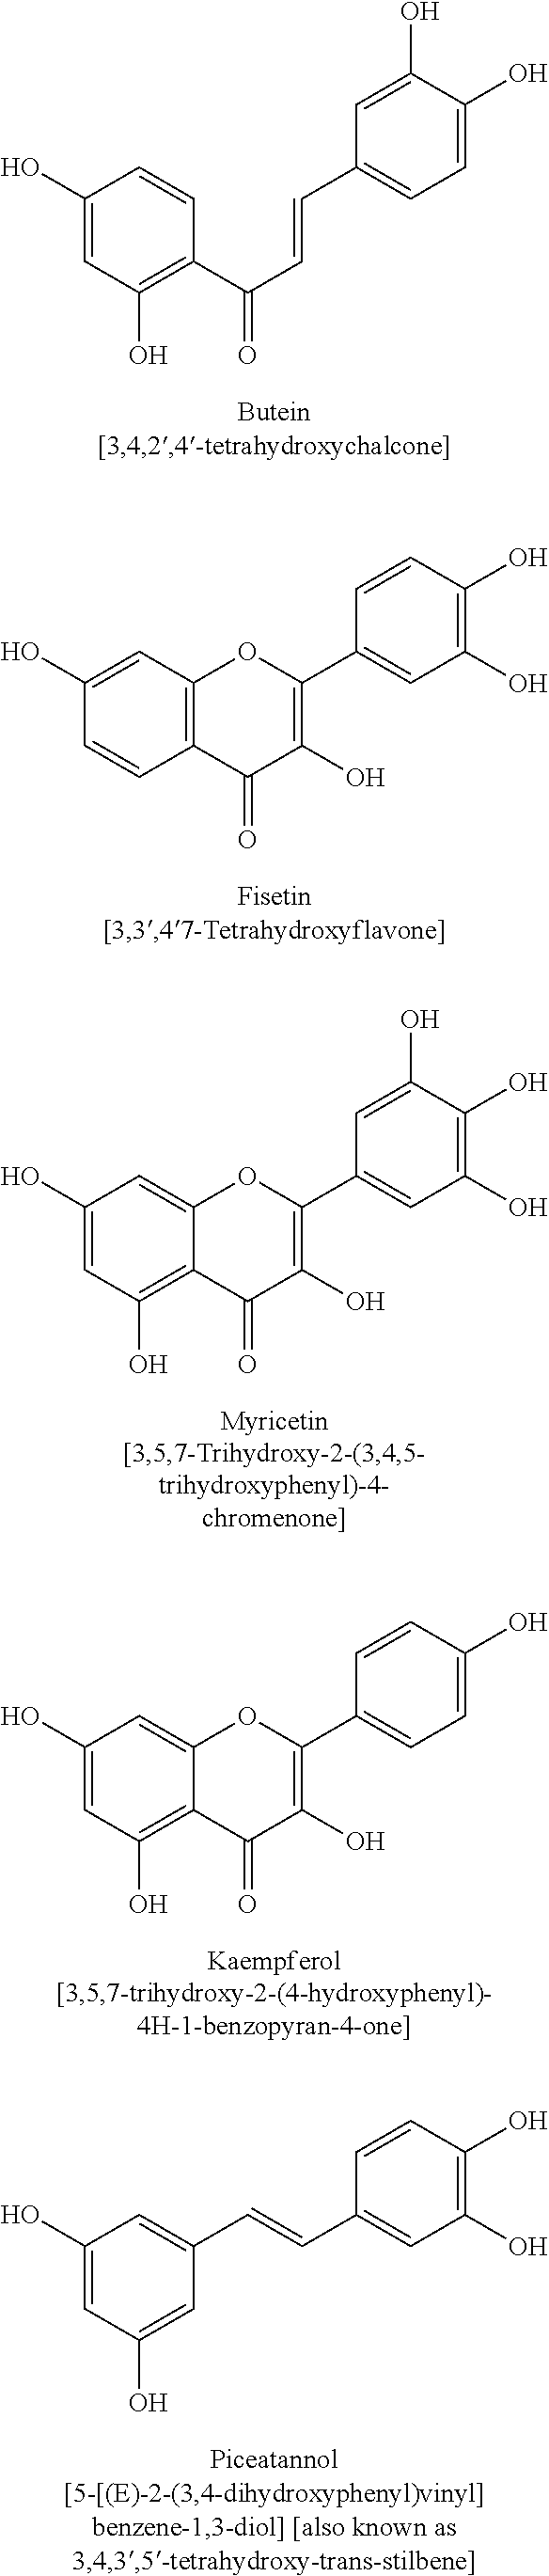 US20140363502A1 - Resveratrol-Containing Compositions and